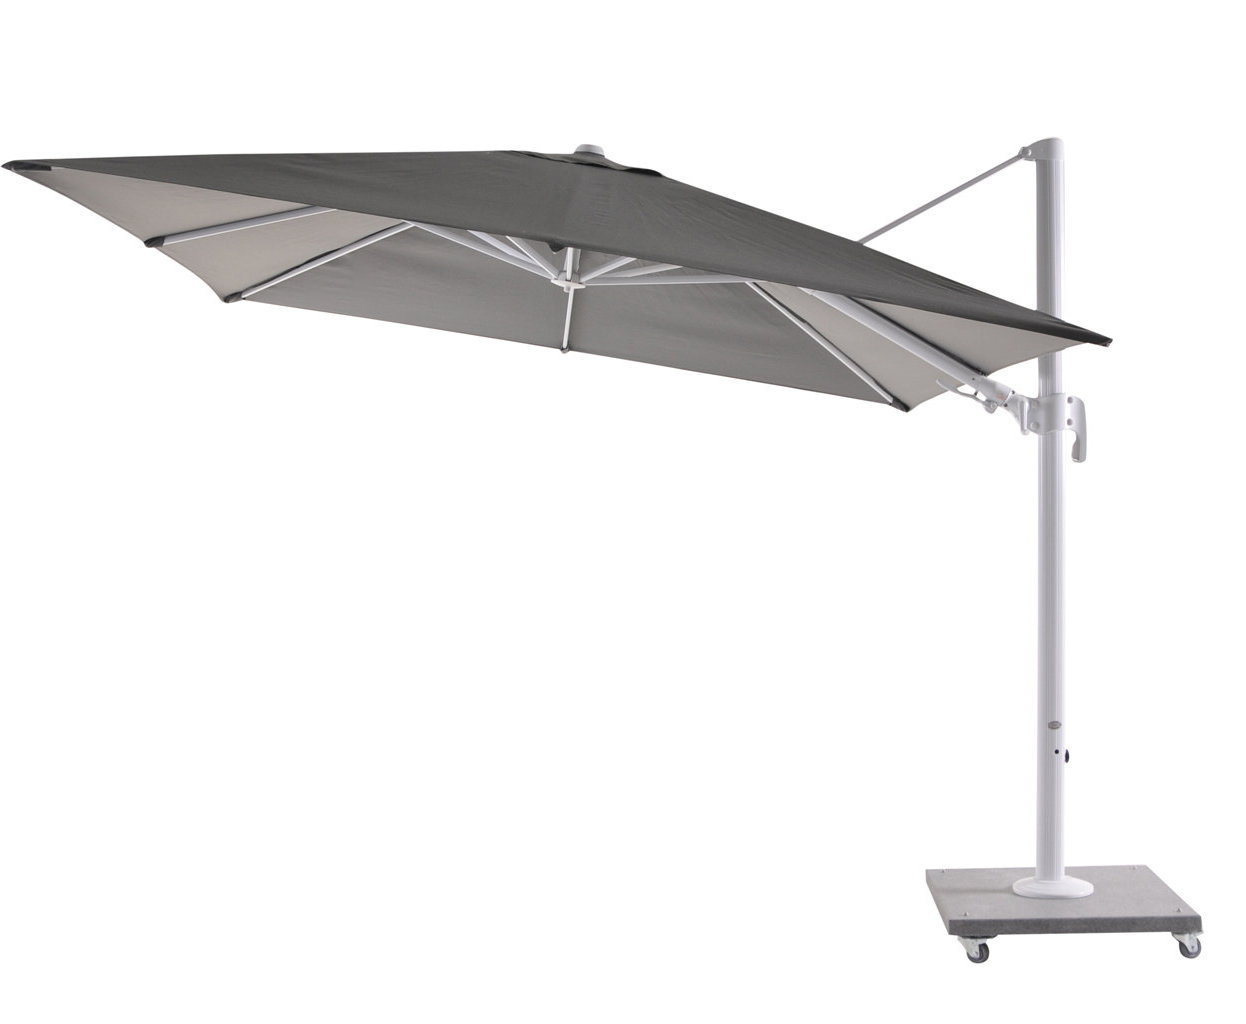 Well Known Frederick Square Cantilever Umbrellas In Bozarth 10' Square Cantilever Umbrella (View 17 of 20)